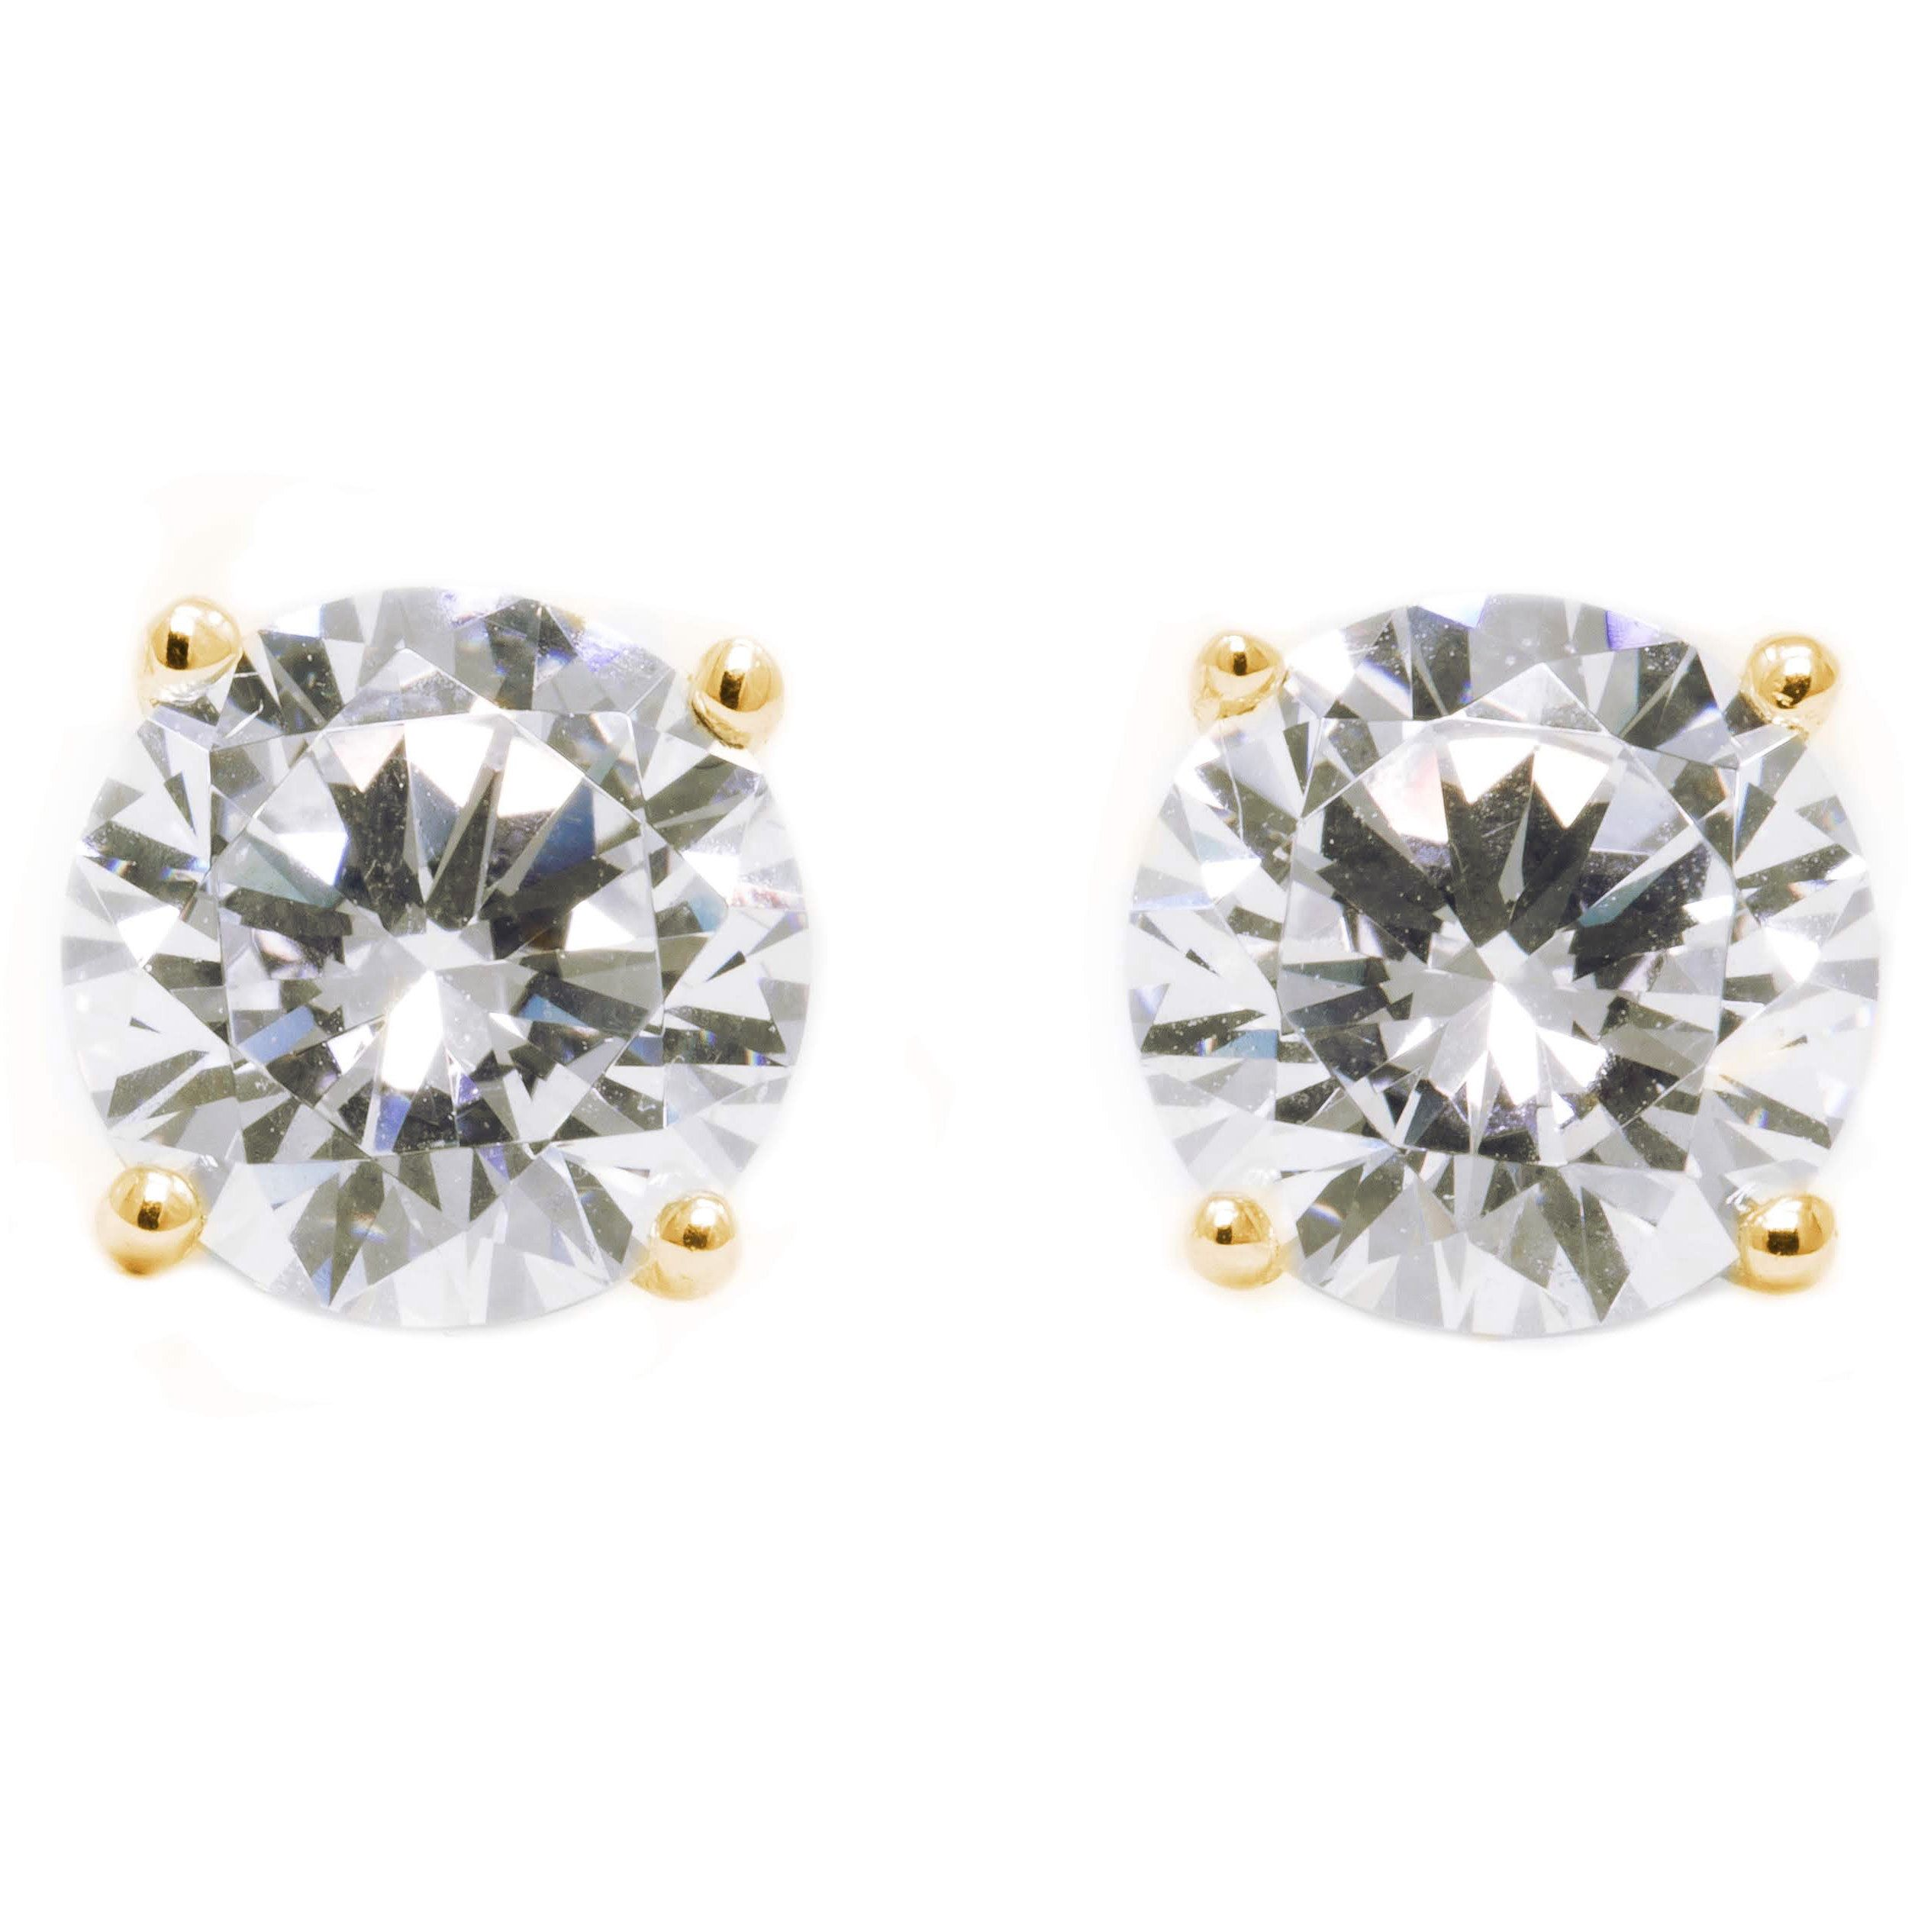 5113cc85c 3 Ct Round Cut Stud Diamond Earrings in Solid 14k 18k Yellow Gold Screw  Back Studs